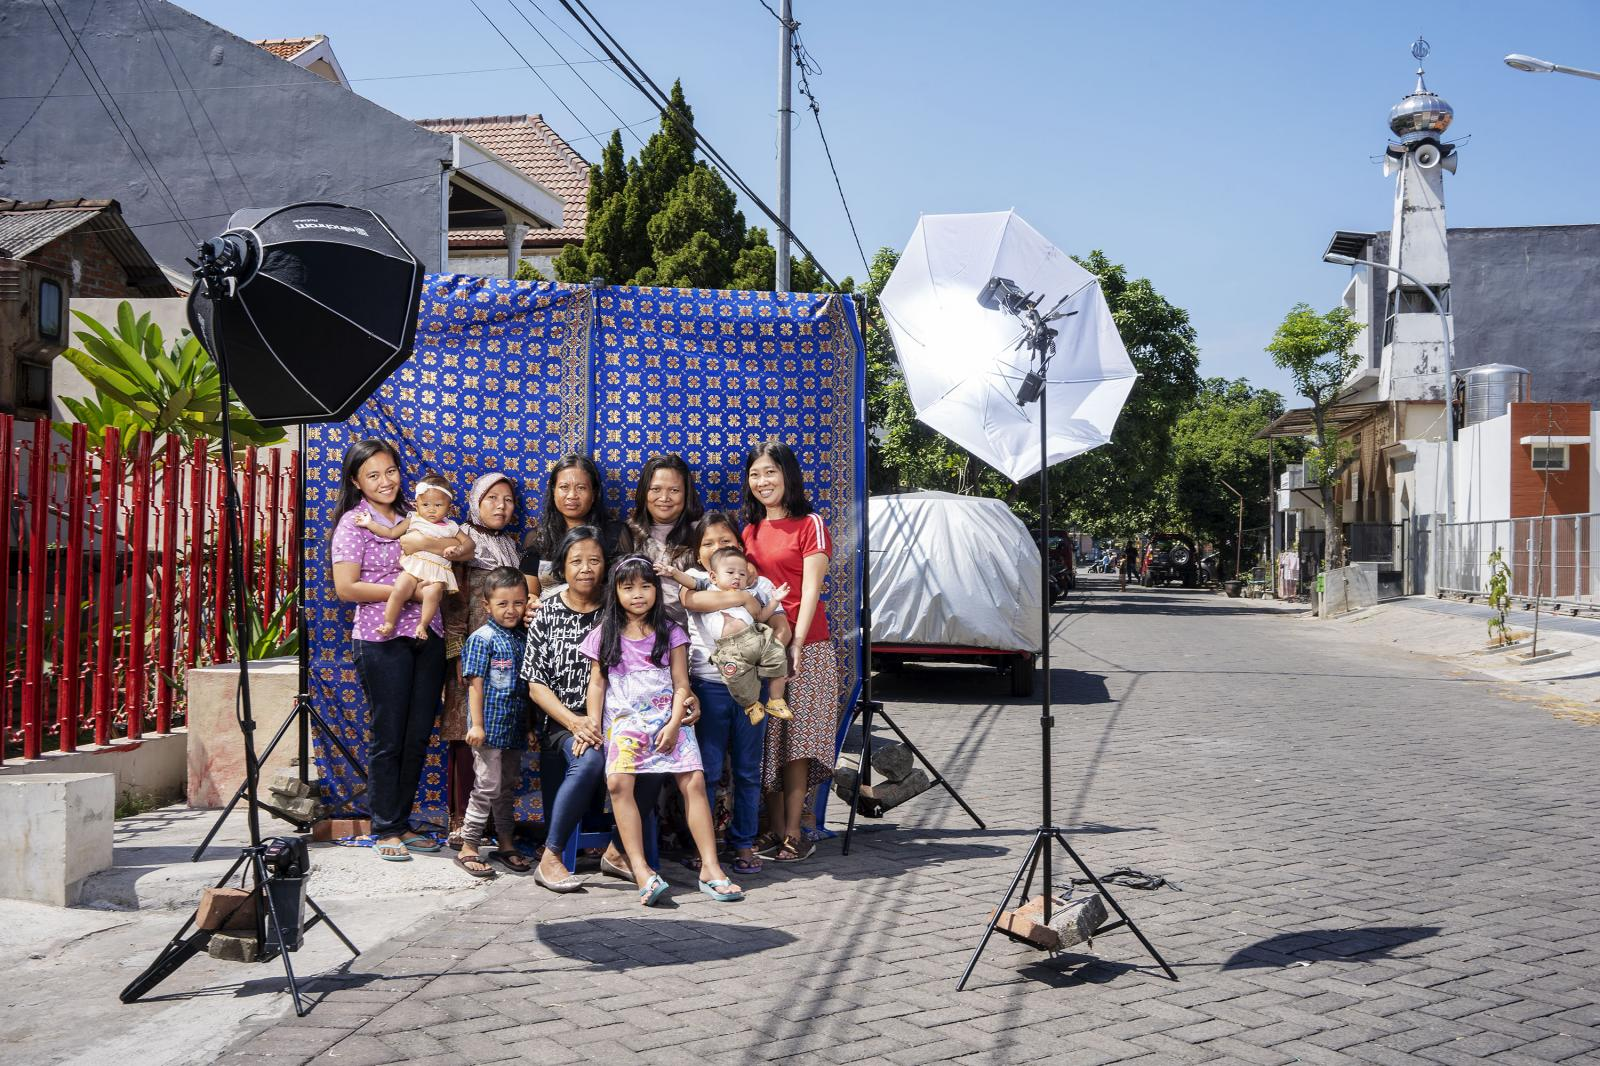 A family portrait in East Java, Indonesia on Thursday, July 12, 2018.